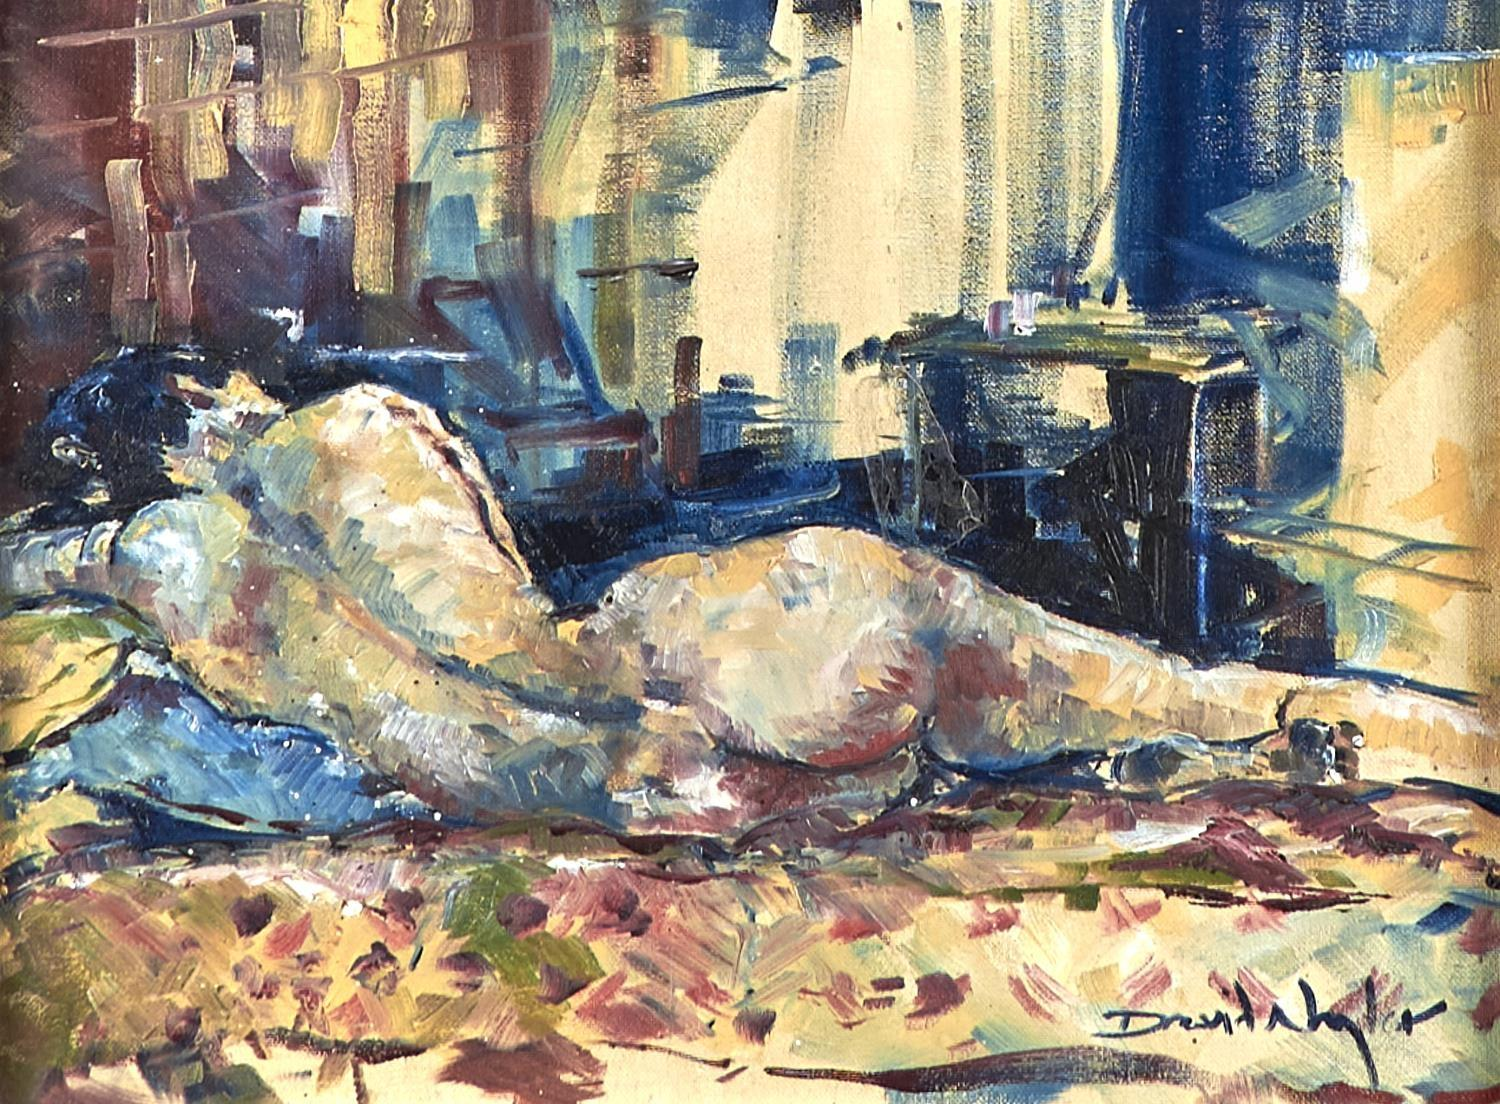 DAVID NAYOR, 20TH/21ST CENTURY - RECLINING FEMALE NUDE, SIGNED, OIL ON CANVAS, 29 X 39CM Good